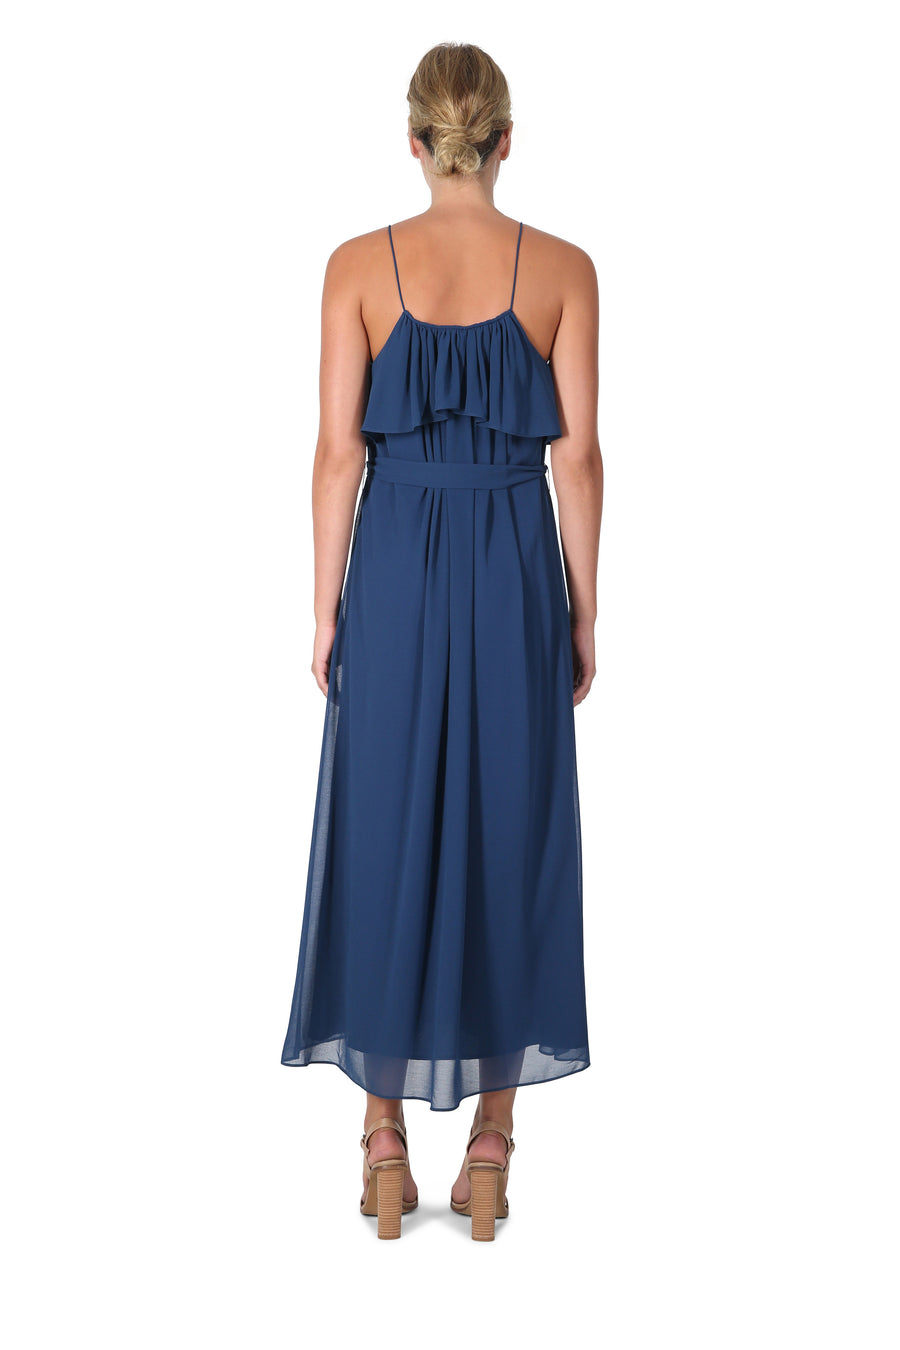 Cooper St Hipu Maxi Dress